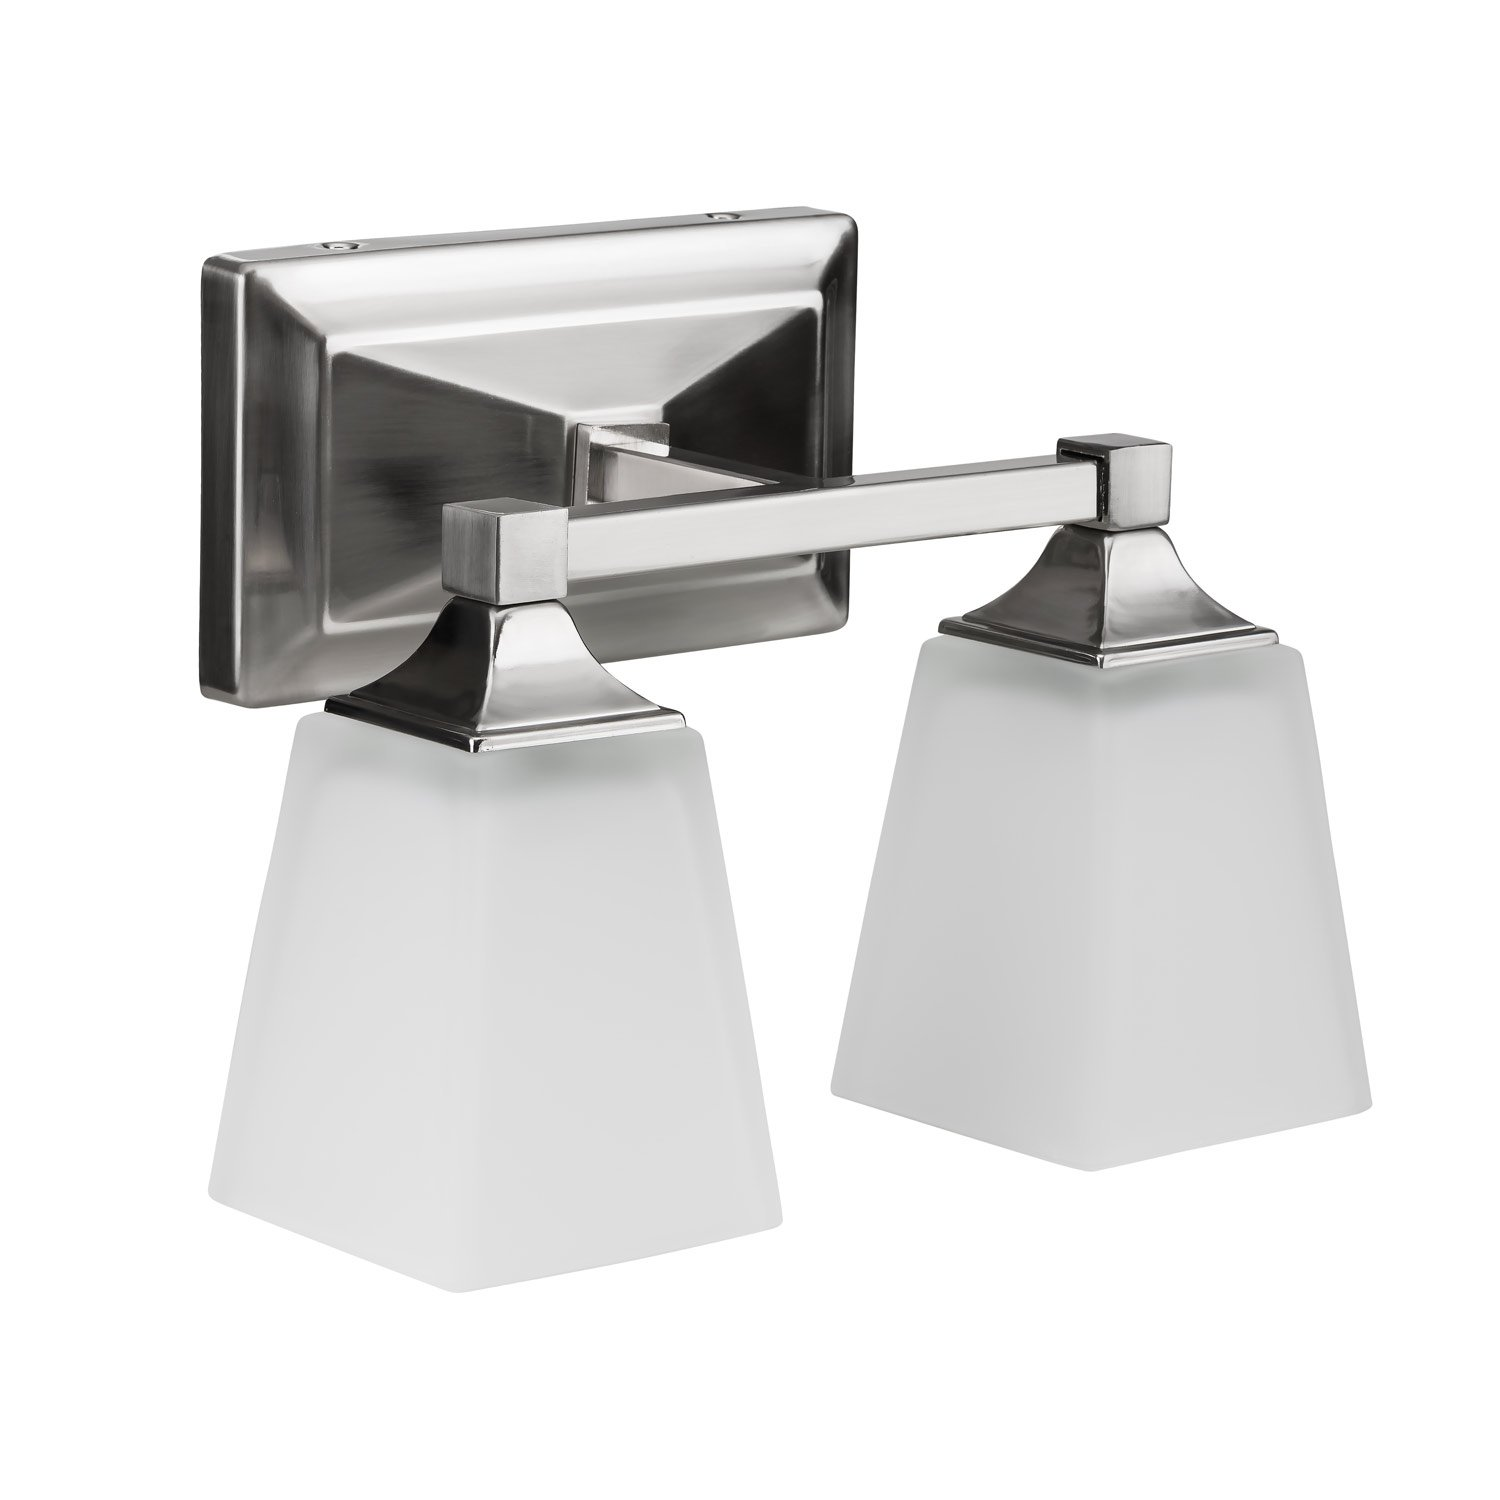 LB74111 LED 2-Light Bath Vanity Light, Antique Brushed Nickel, 15-Watt 120W Equiv. 4000K Cool White, 1050 Lumens, 12 W, LED Wall Sconce Fixture, ETL and Energy Star Listed